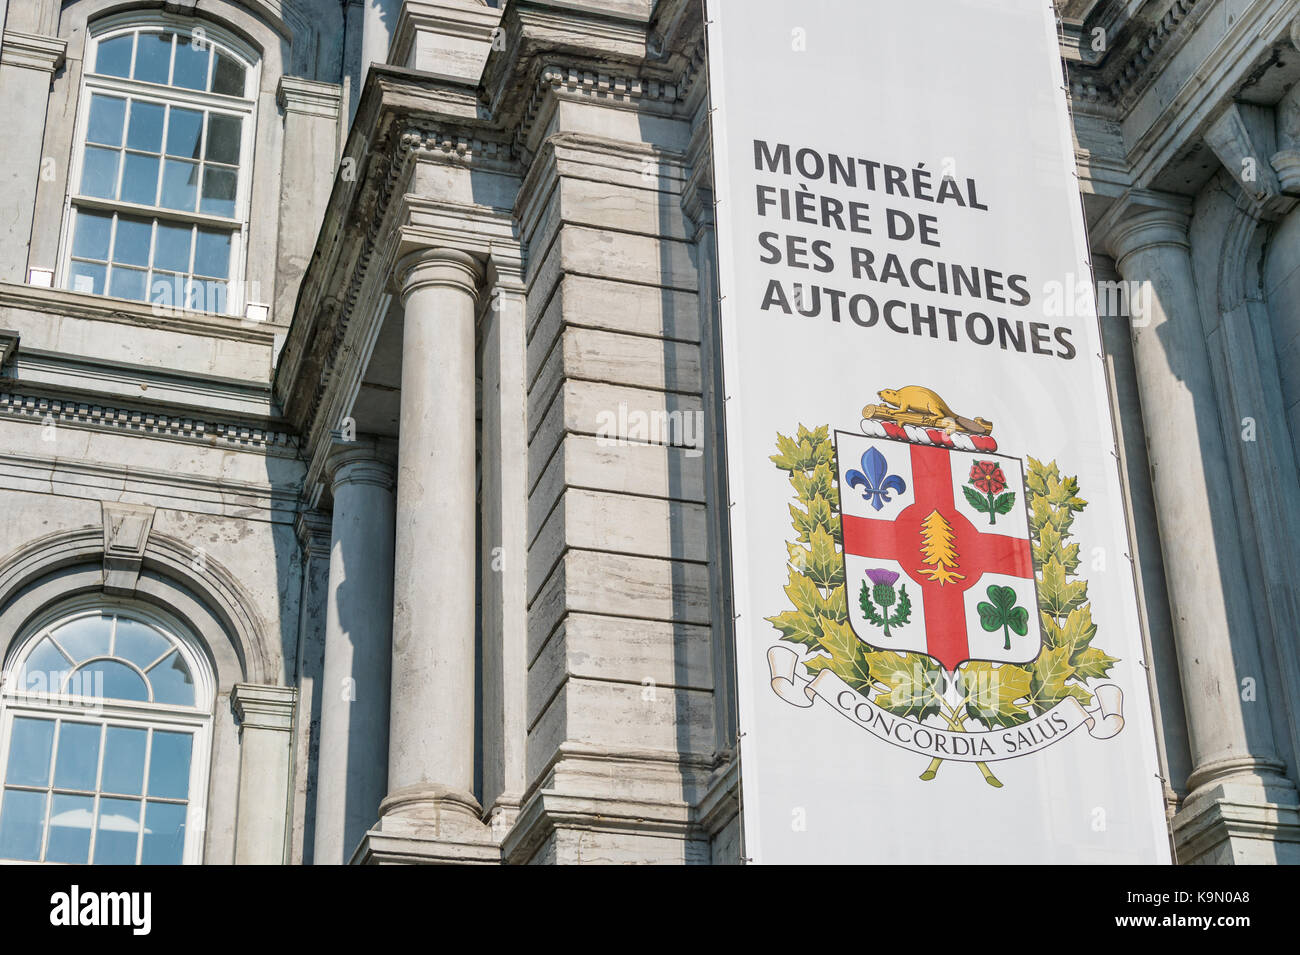 New montreal coat of arms now includes a new symbol (white pine) to represent First Nations on the flag (2017) - Stock Image